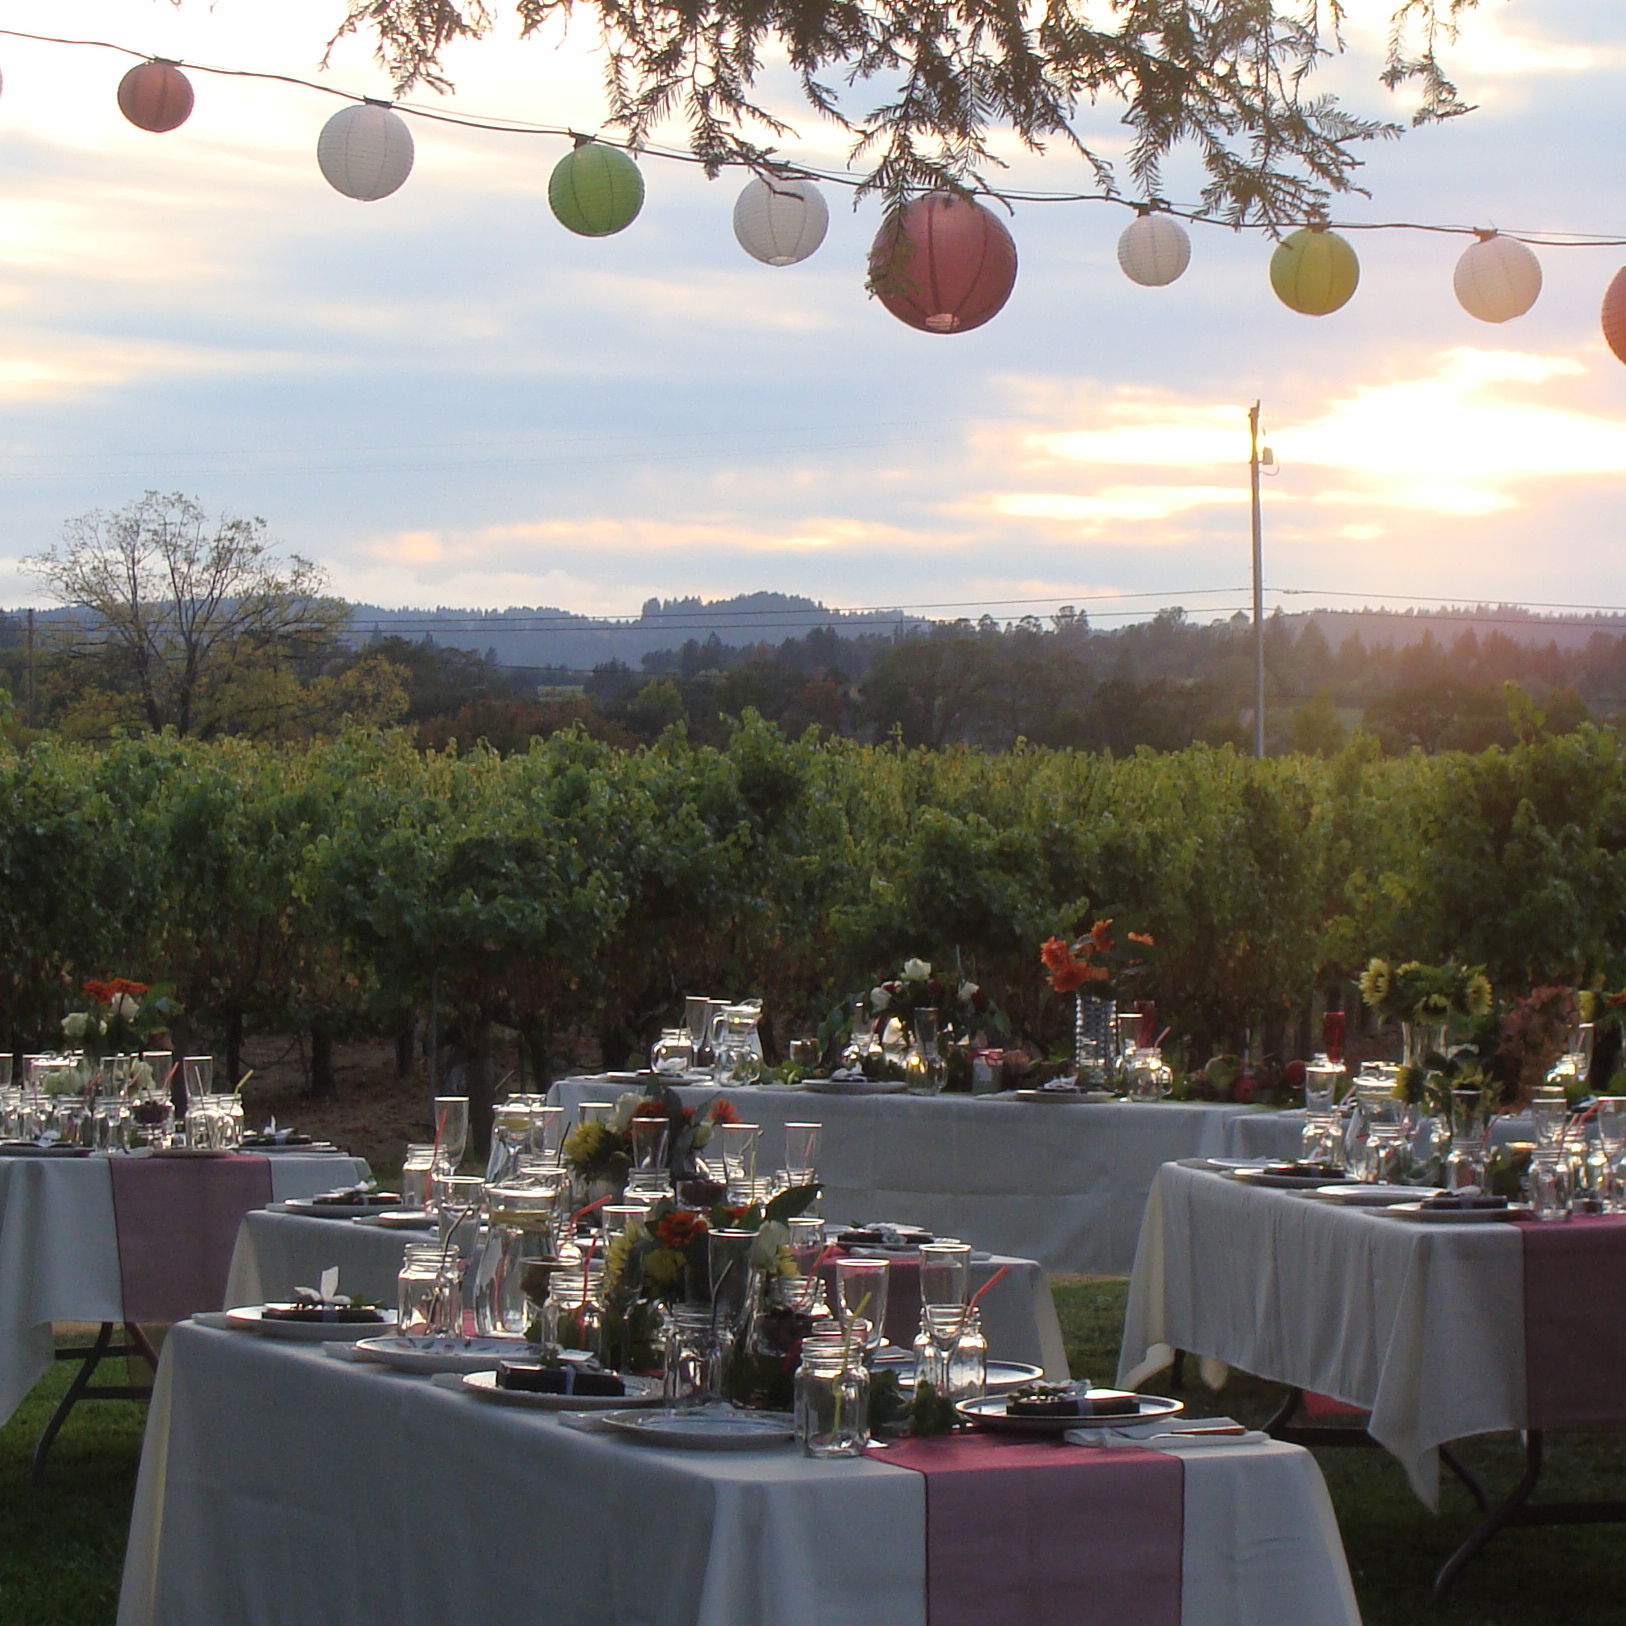 table settings before an outdoor summer evening event at Hook & Ladder Vineyards & Winery